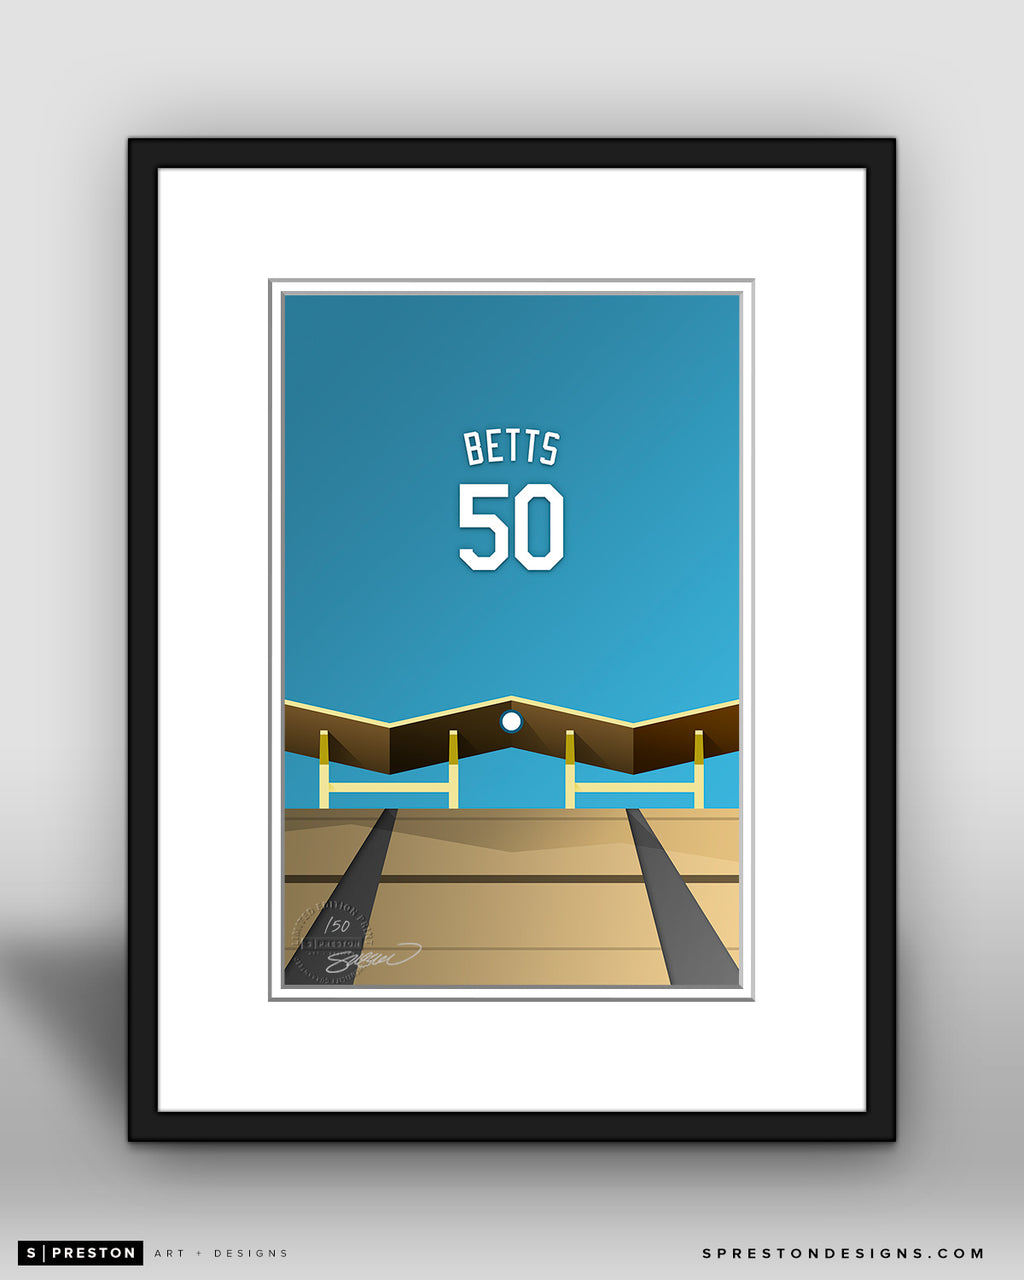 Minimalist Dodger Stadium - Player Series - Mookie Betts